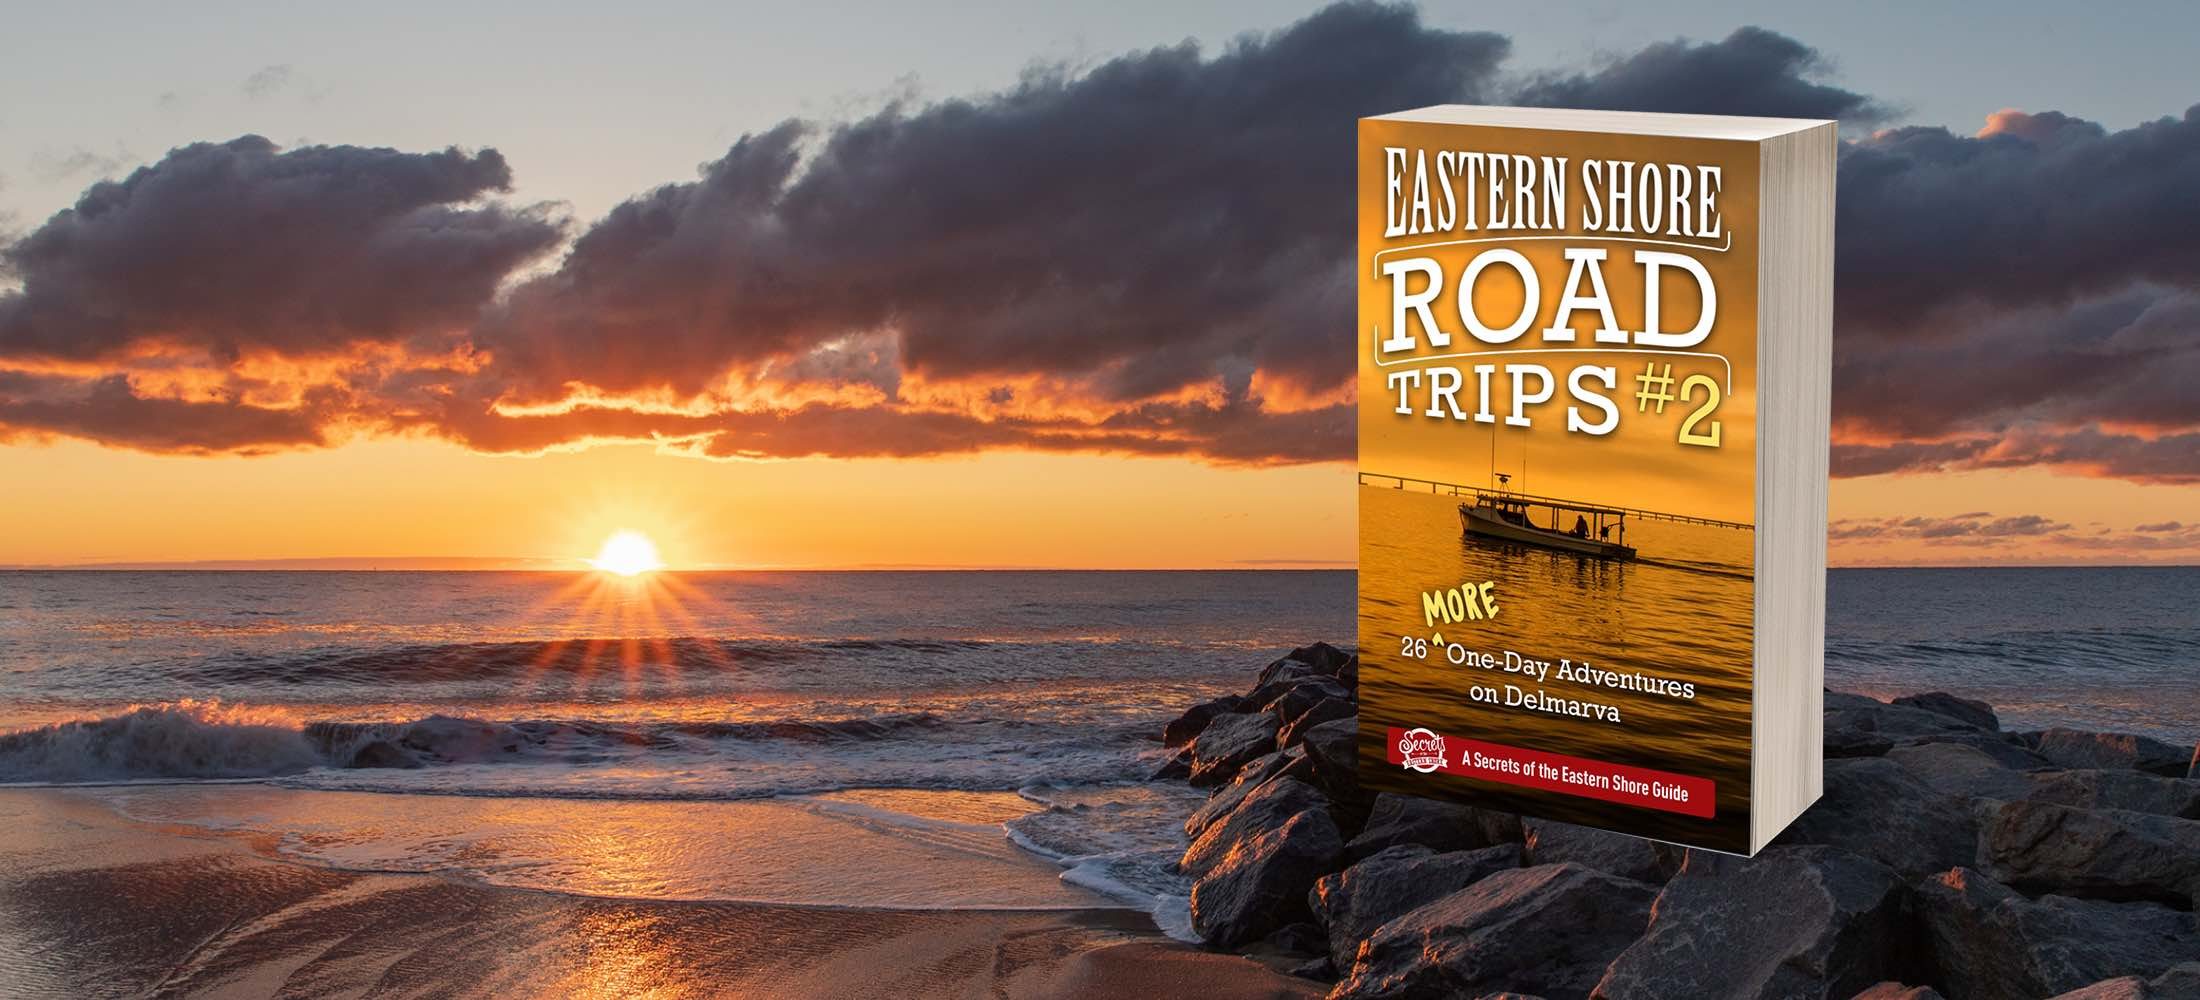 Where to Buy Eastern Shore Road Trips #2 in Stores